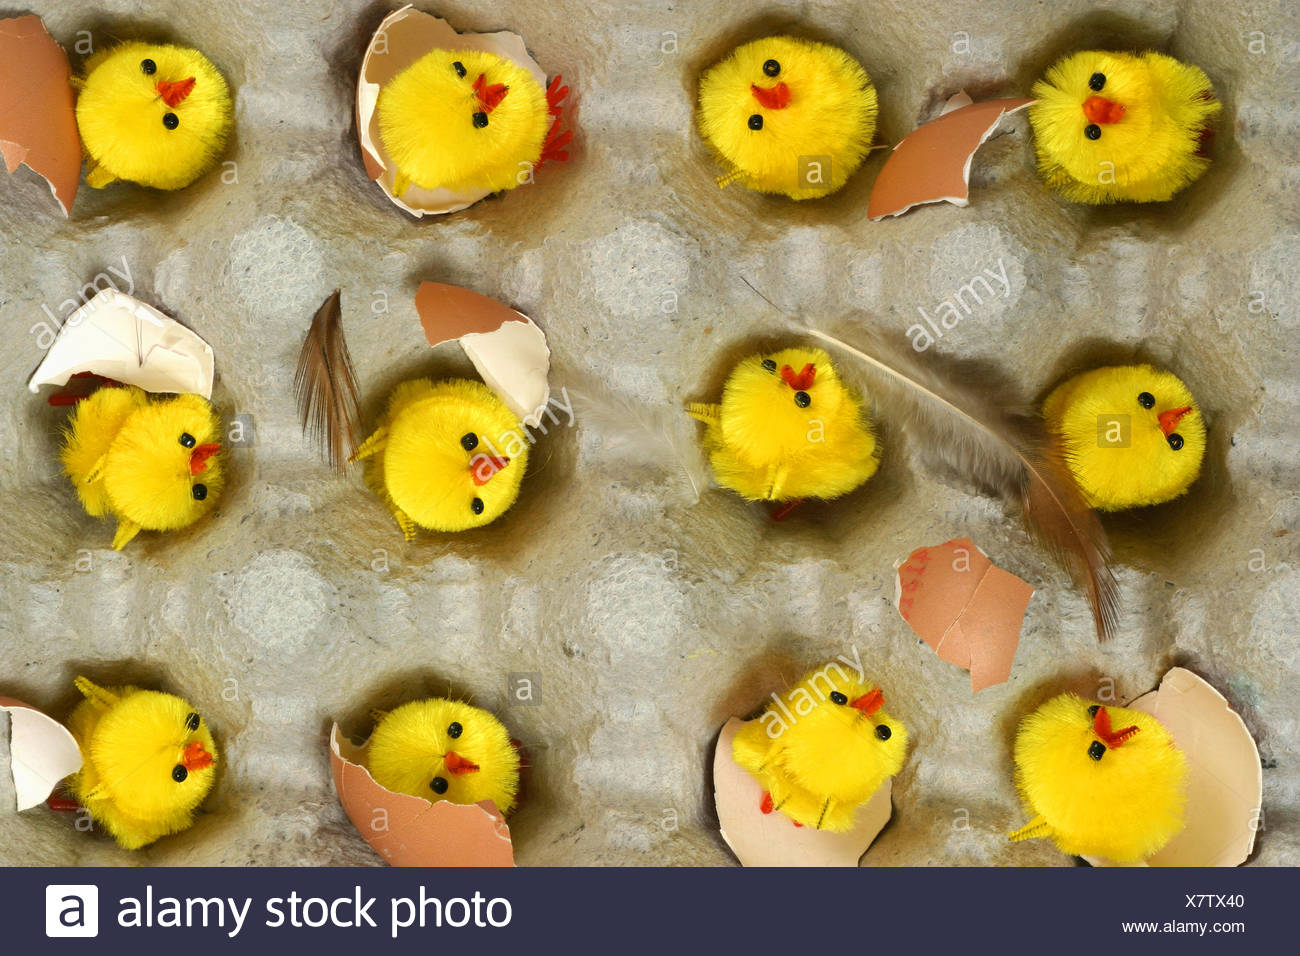 A carboard egg box filled with toy furry chicks, with pieces of shell and feathers around them - Stock Image